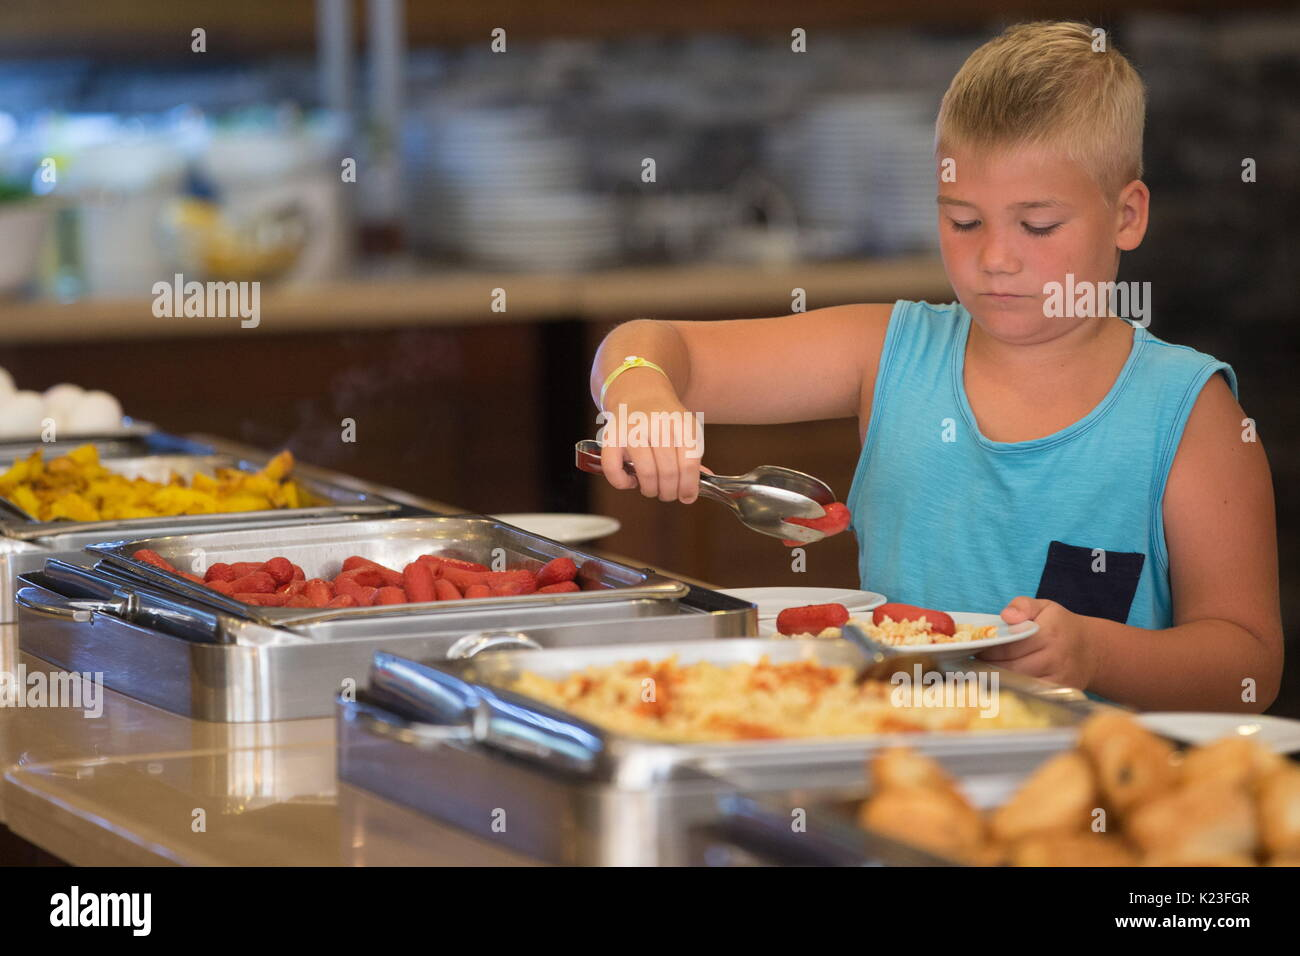 Kemer, Turkey. 26th Aug, 2017. A child in a buffet at the Meder Resort Hotel. Credit: Sergei Bobylev/TASS/Alamy Live News - Stock Image